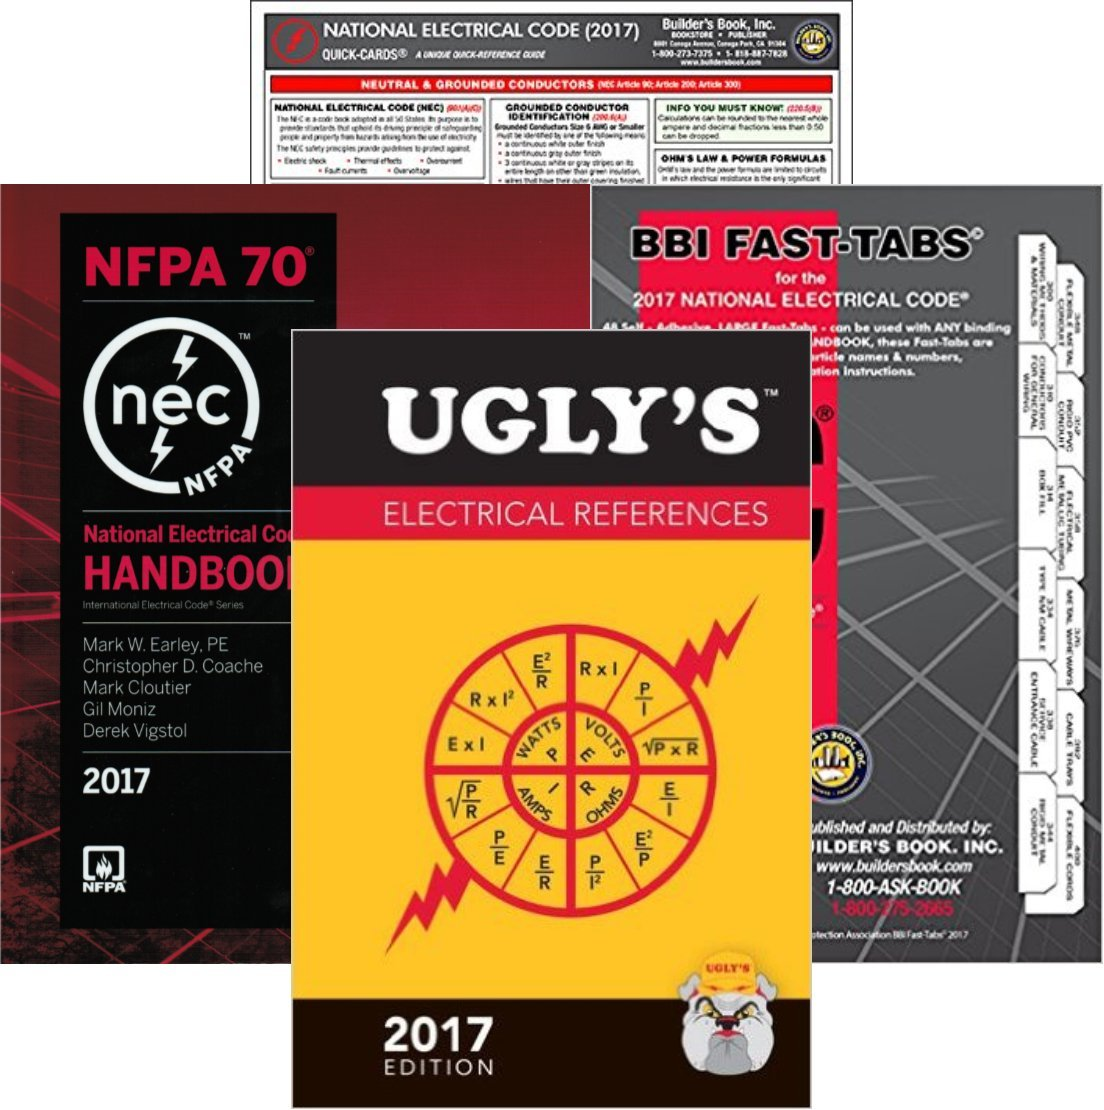 2017 NFPA 70 National Electrical Code, NEC, HANDBOOK, NEC Fast Tabs, NEC Quick Card and Ugly's Electrical References, 2017 Edition, Package